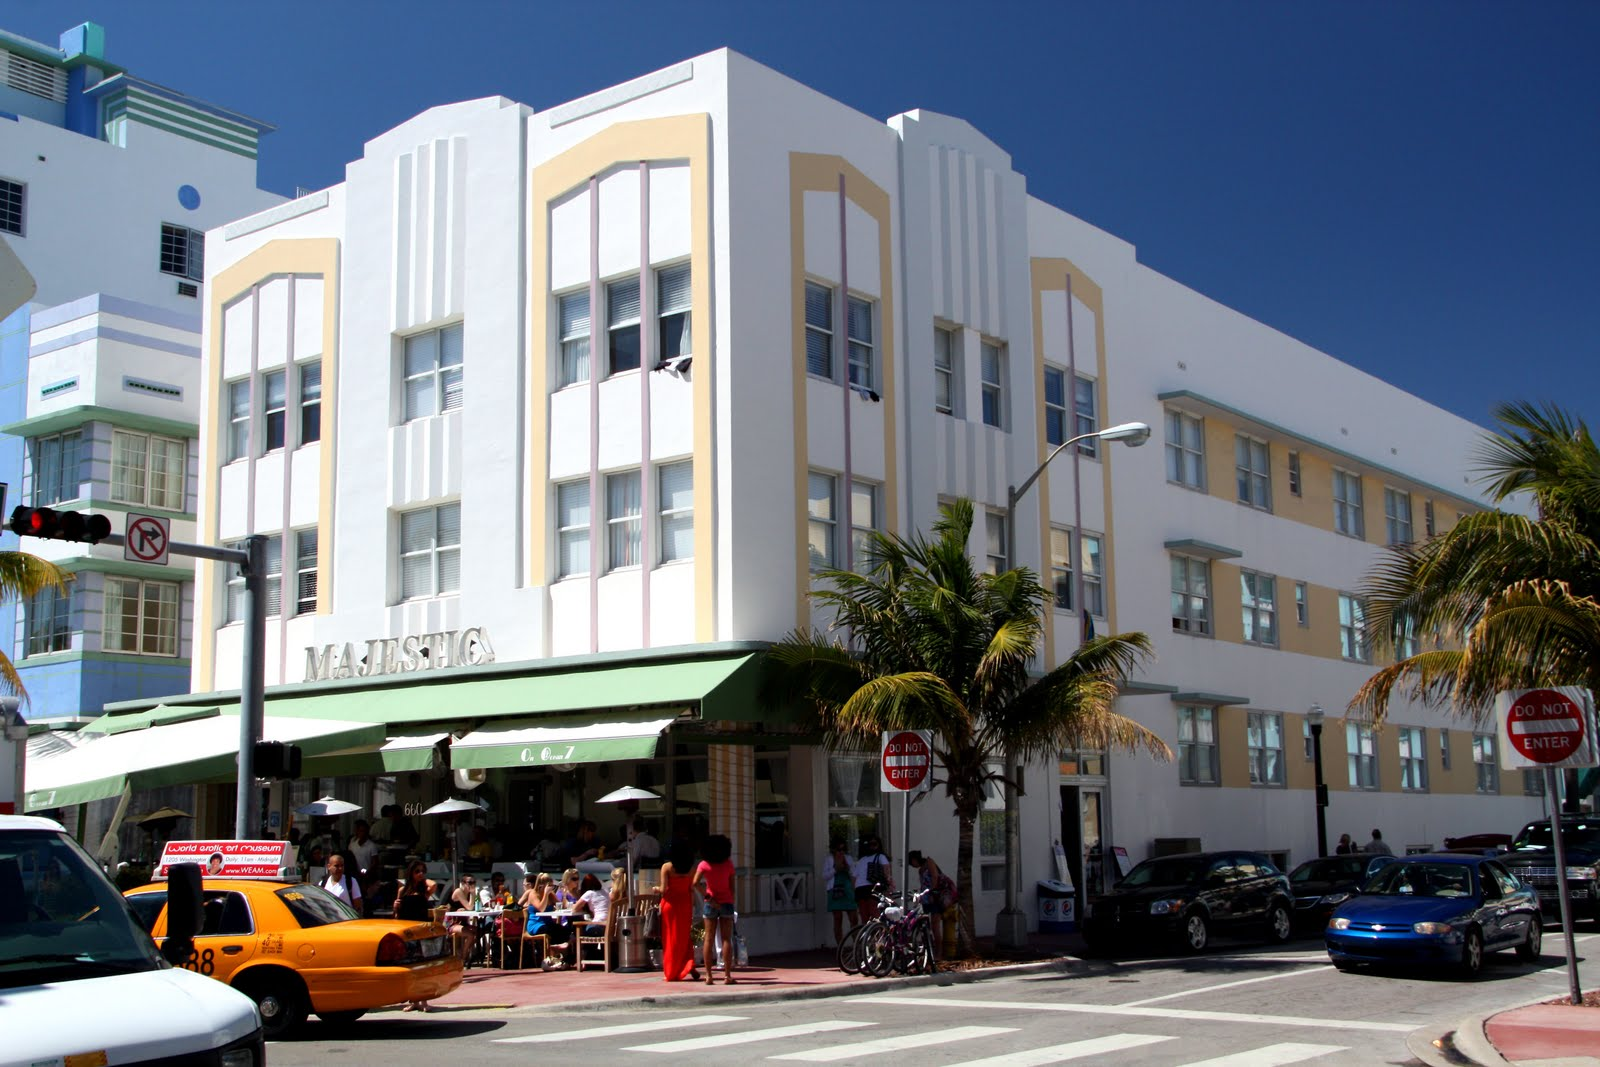 Life Self Guided Miami South Beach Art Deco Tour Mar 13 Panoramio Photo Of Majestic Hotel